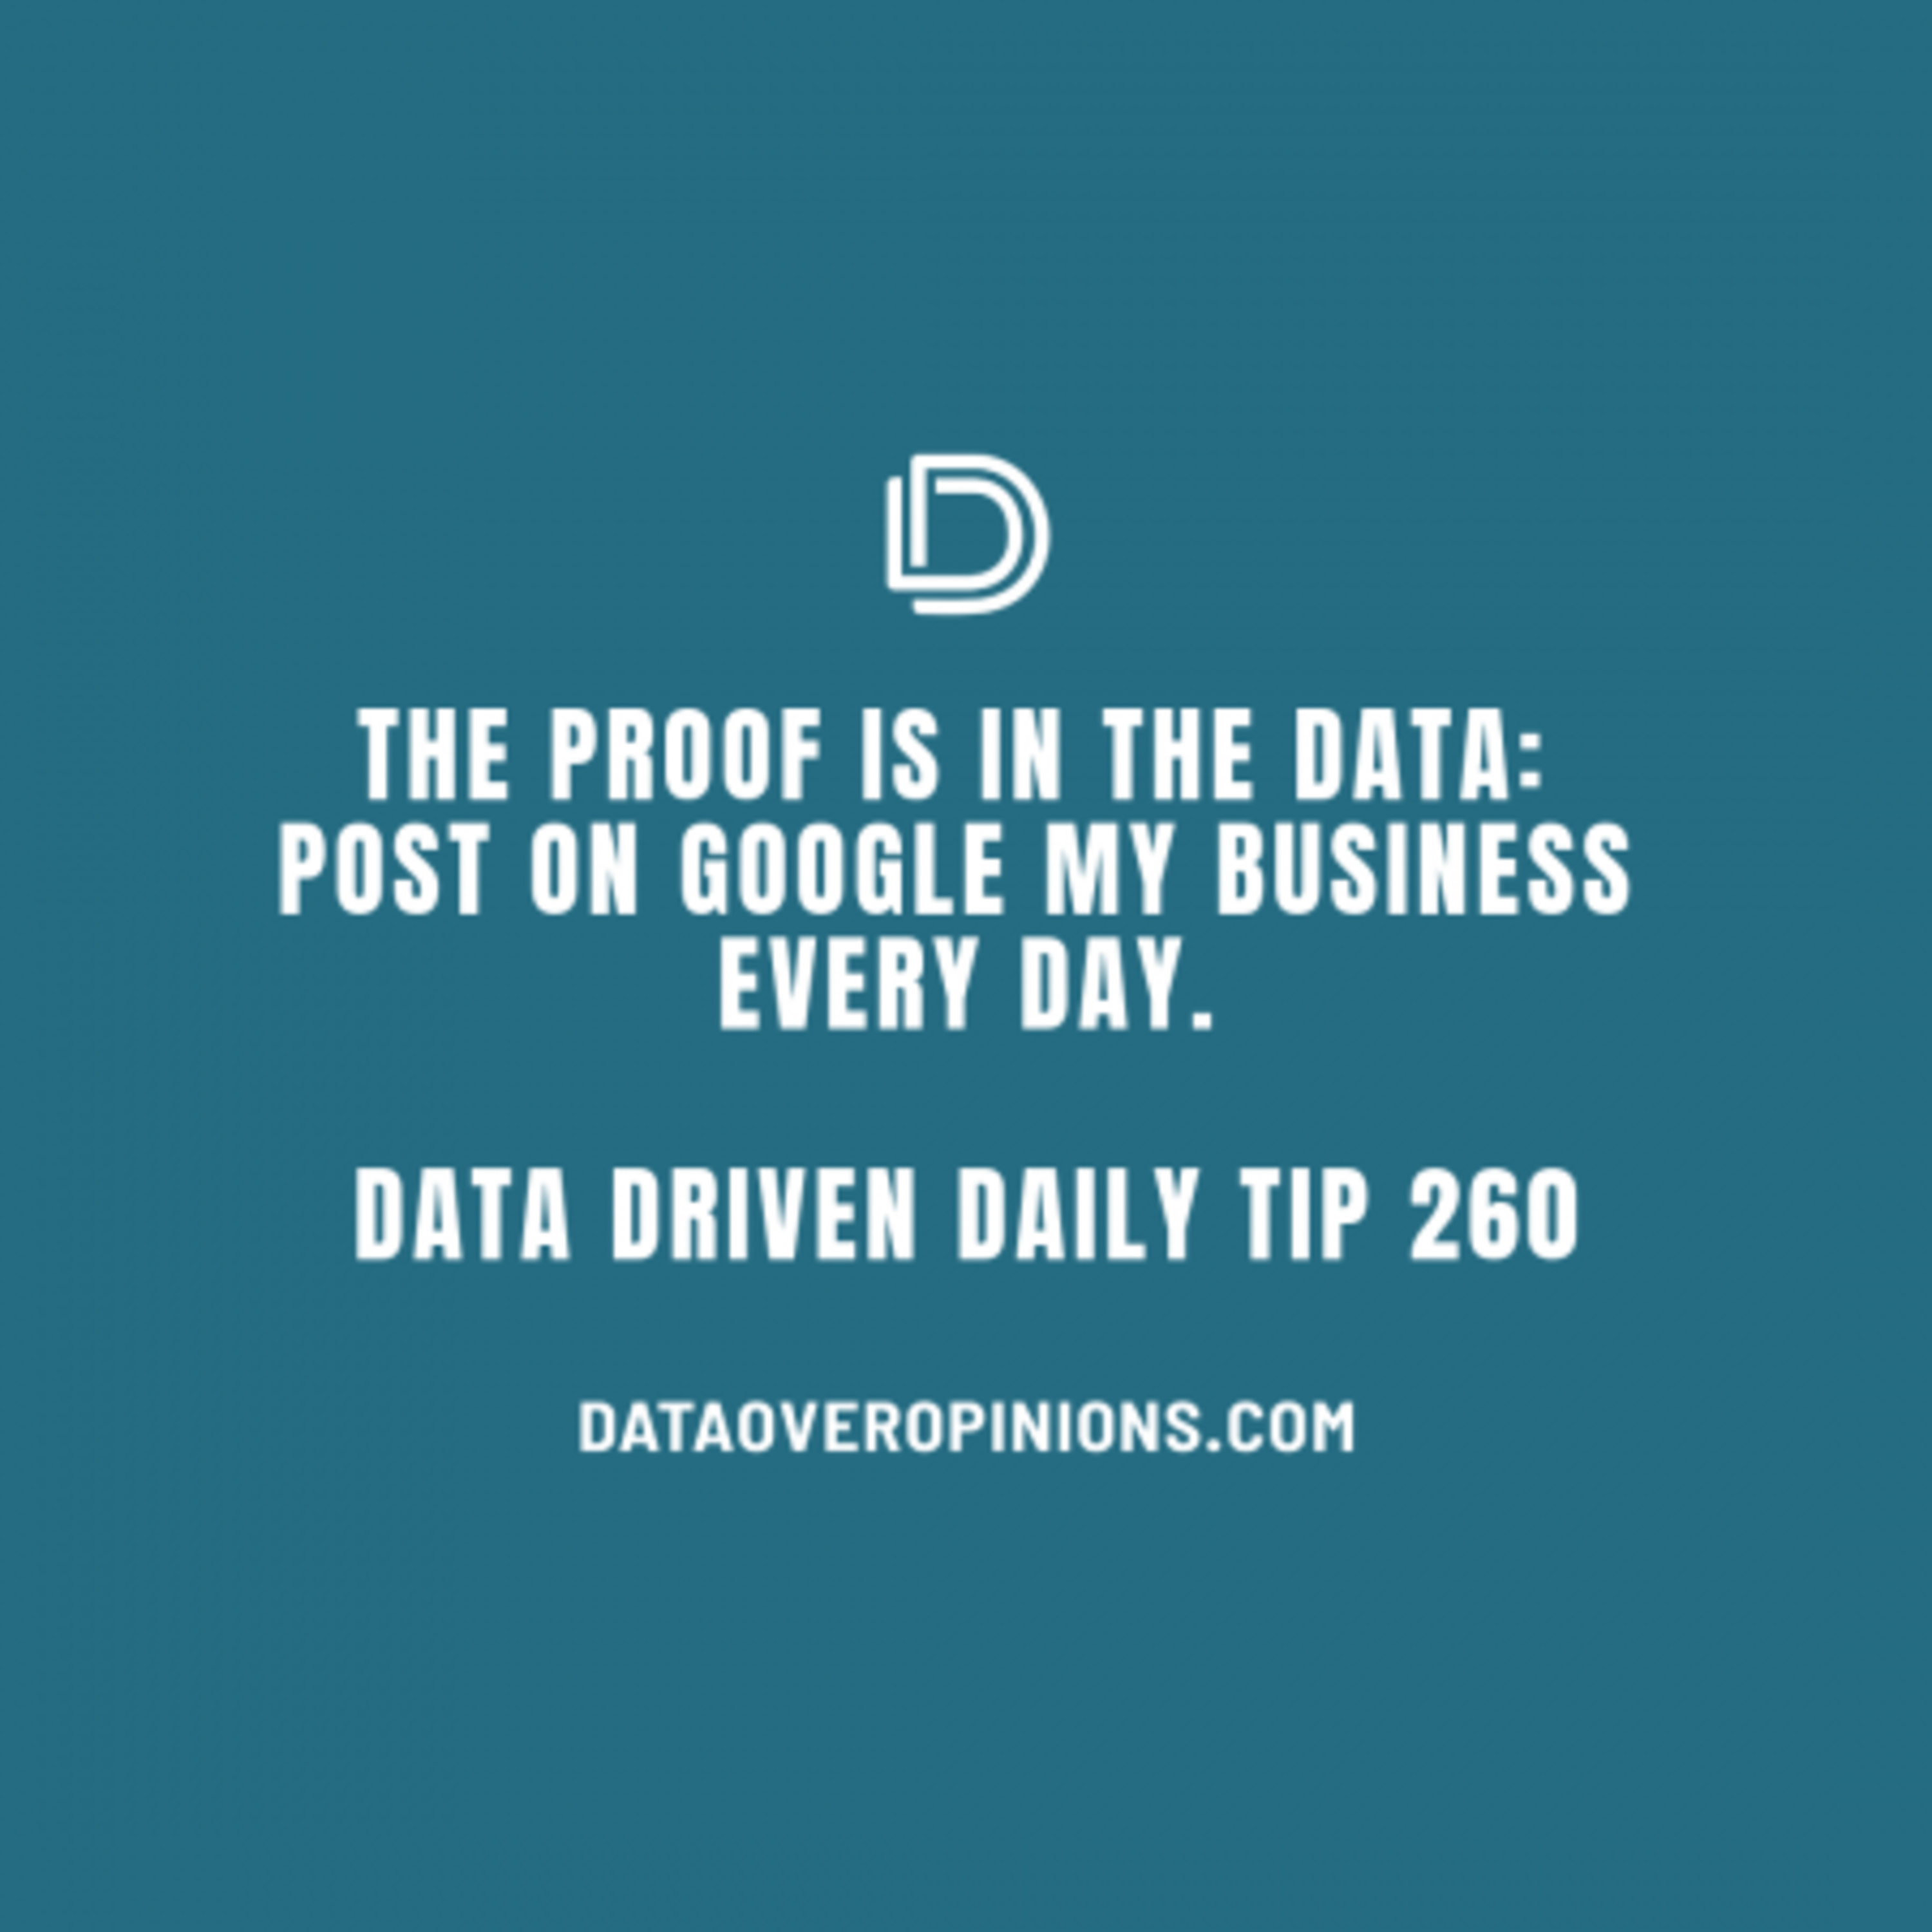 Ep.138: The Proof Is In The Data - Post On Google My Business Every Day: Data Driven Daily Tip 260